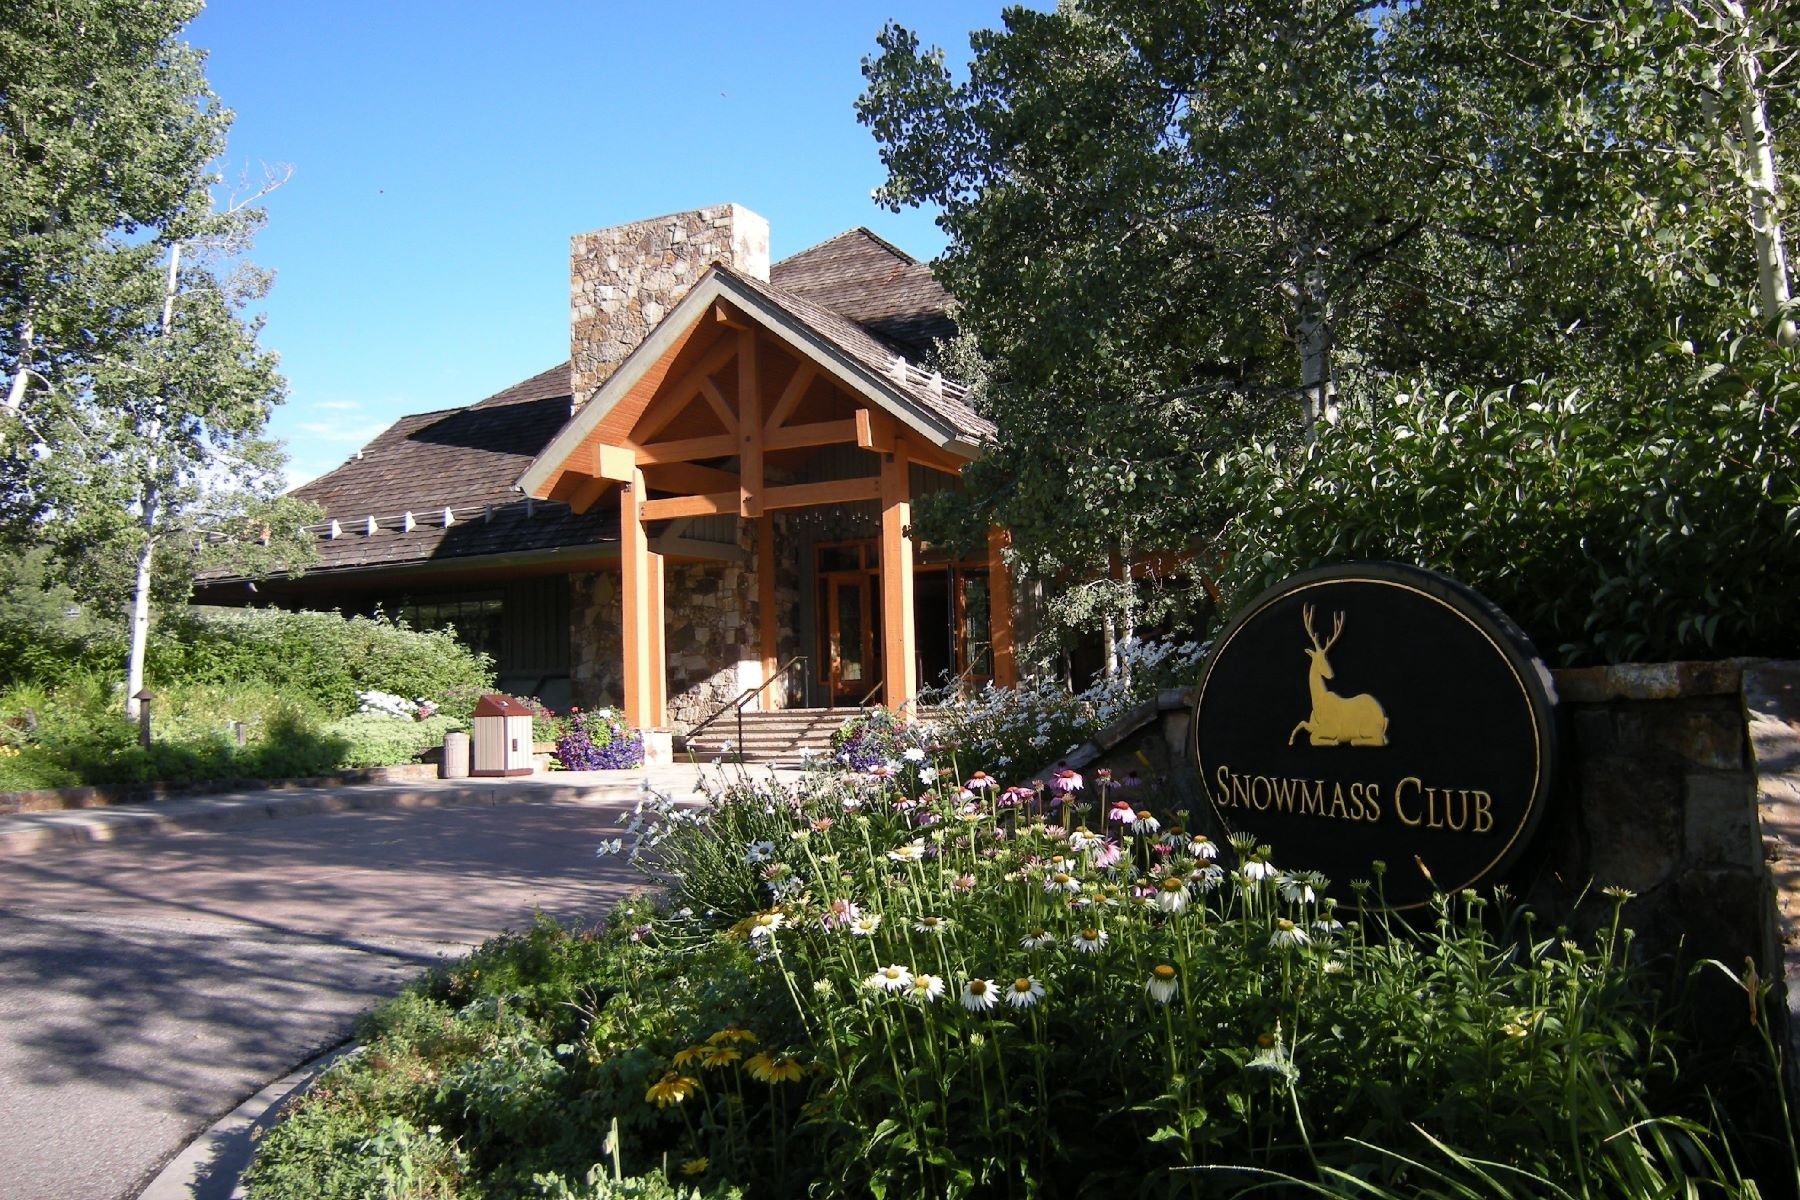 Bien divisible pour l Vente à Snowmass Club Fractional Interest 3-68 0239 Snowmass Club Circle Unit 123 Snowmass Village, Colorado, 81615 États-Unis